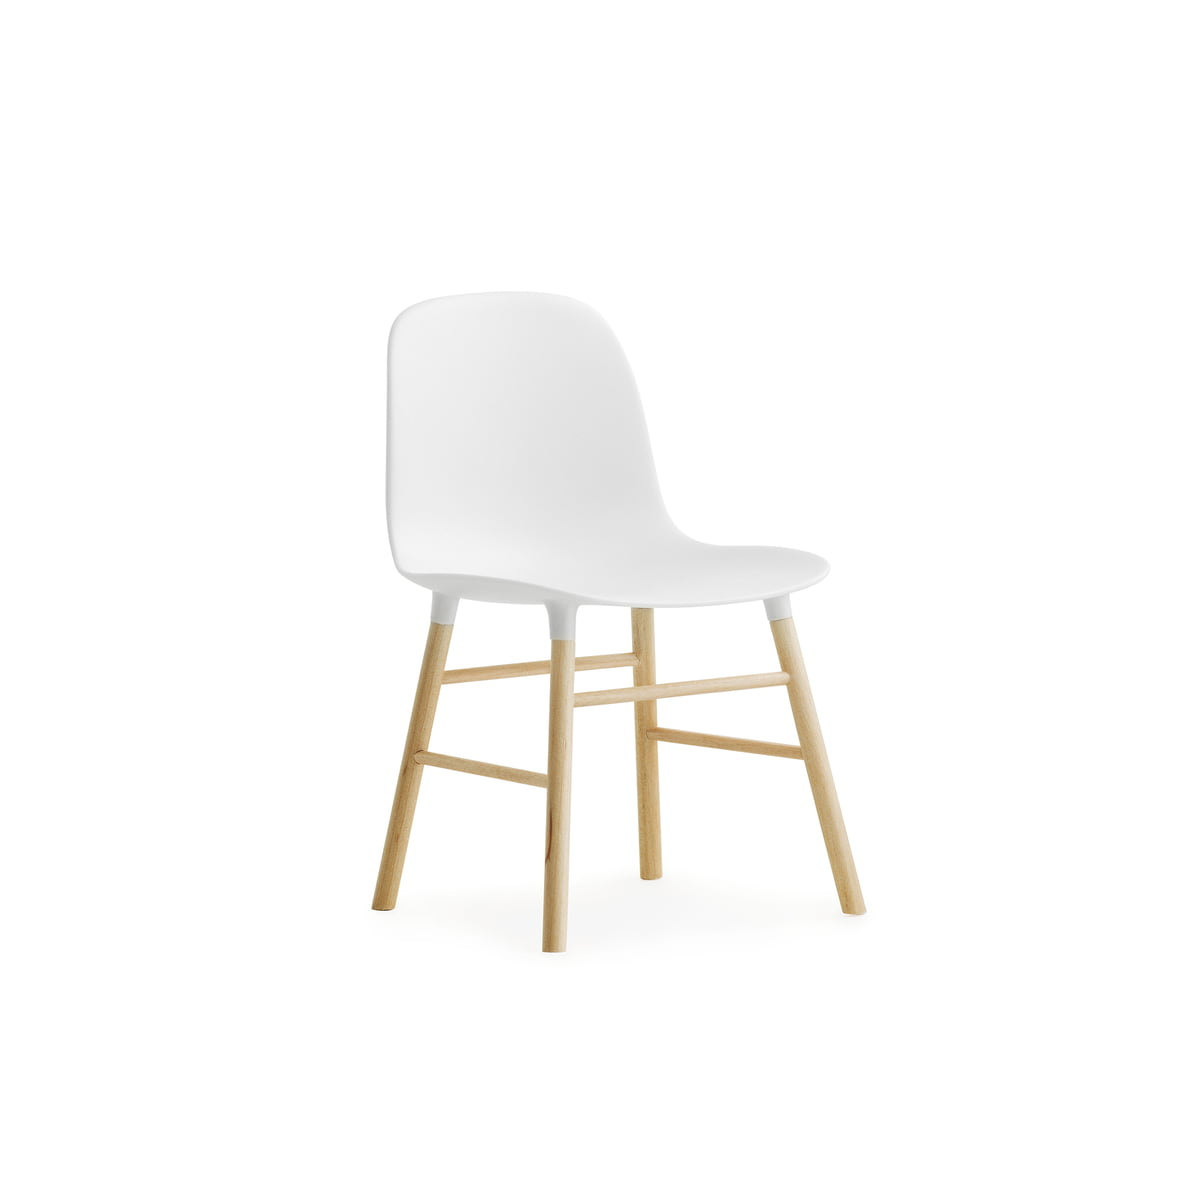 Incroyable Form Chair Miniature By Normann Copenhagen Made Of Oak In White